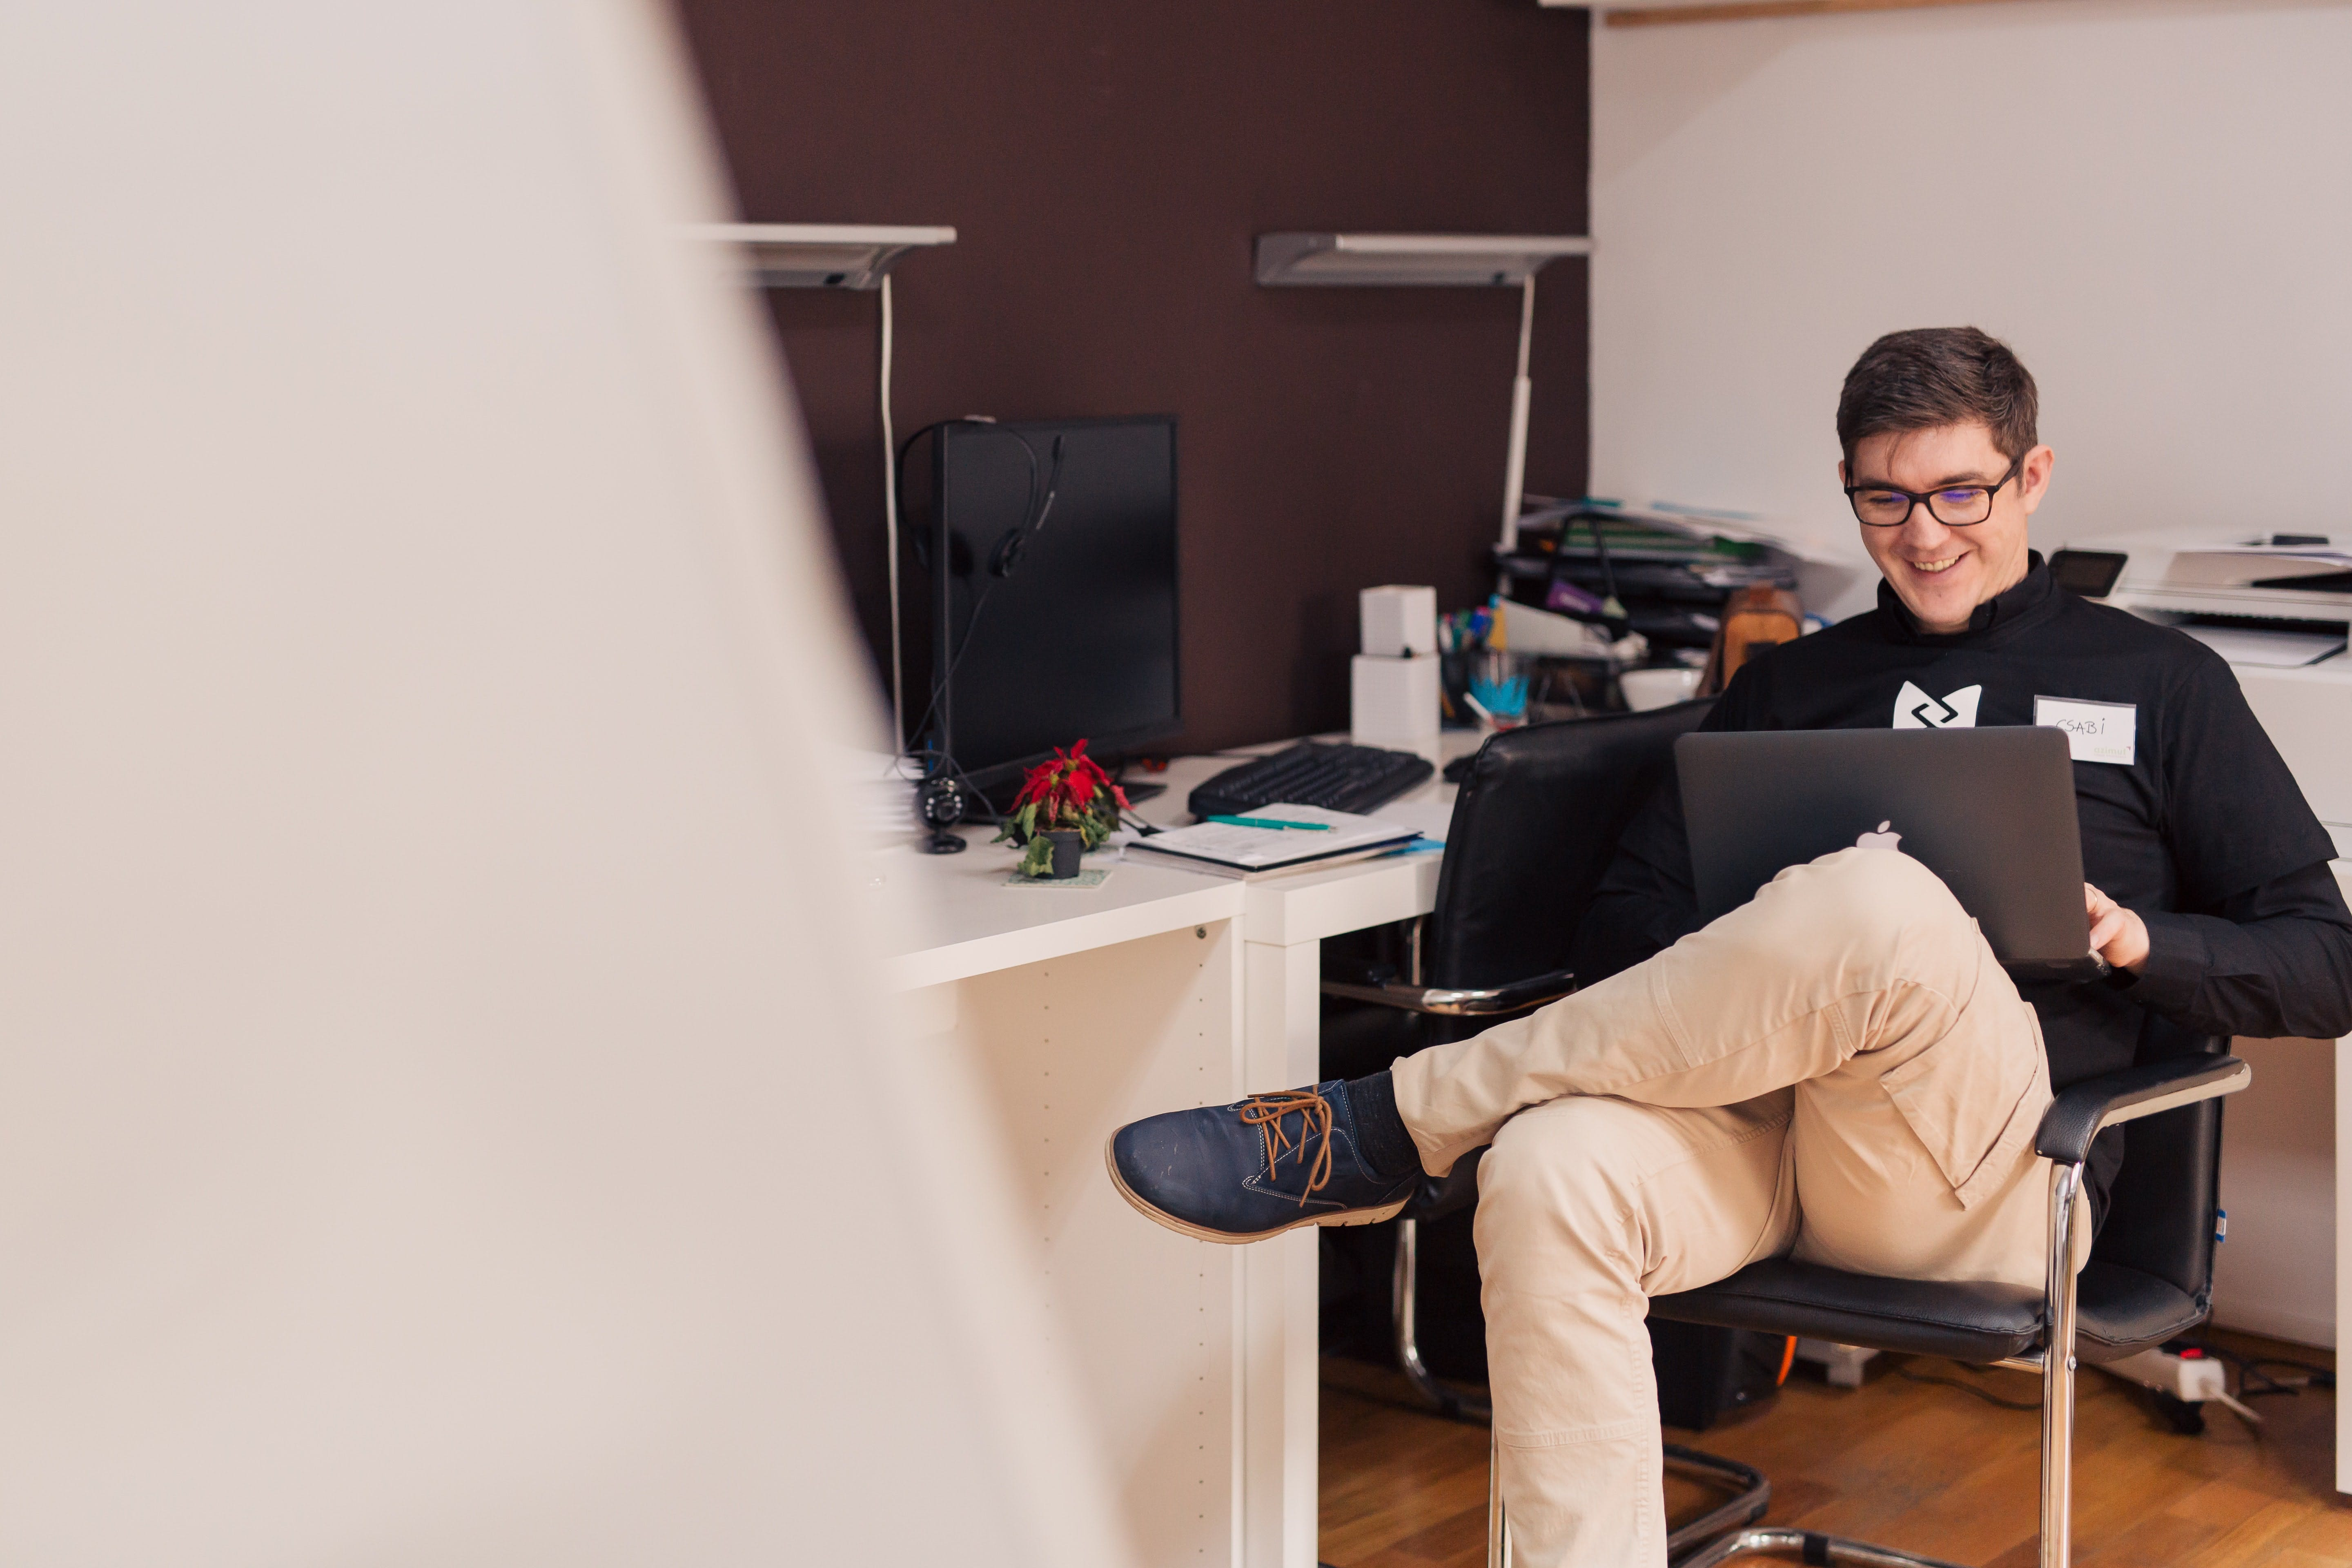 man with glasses sitting on chair in the office using a macbook